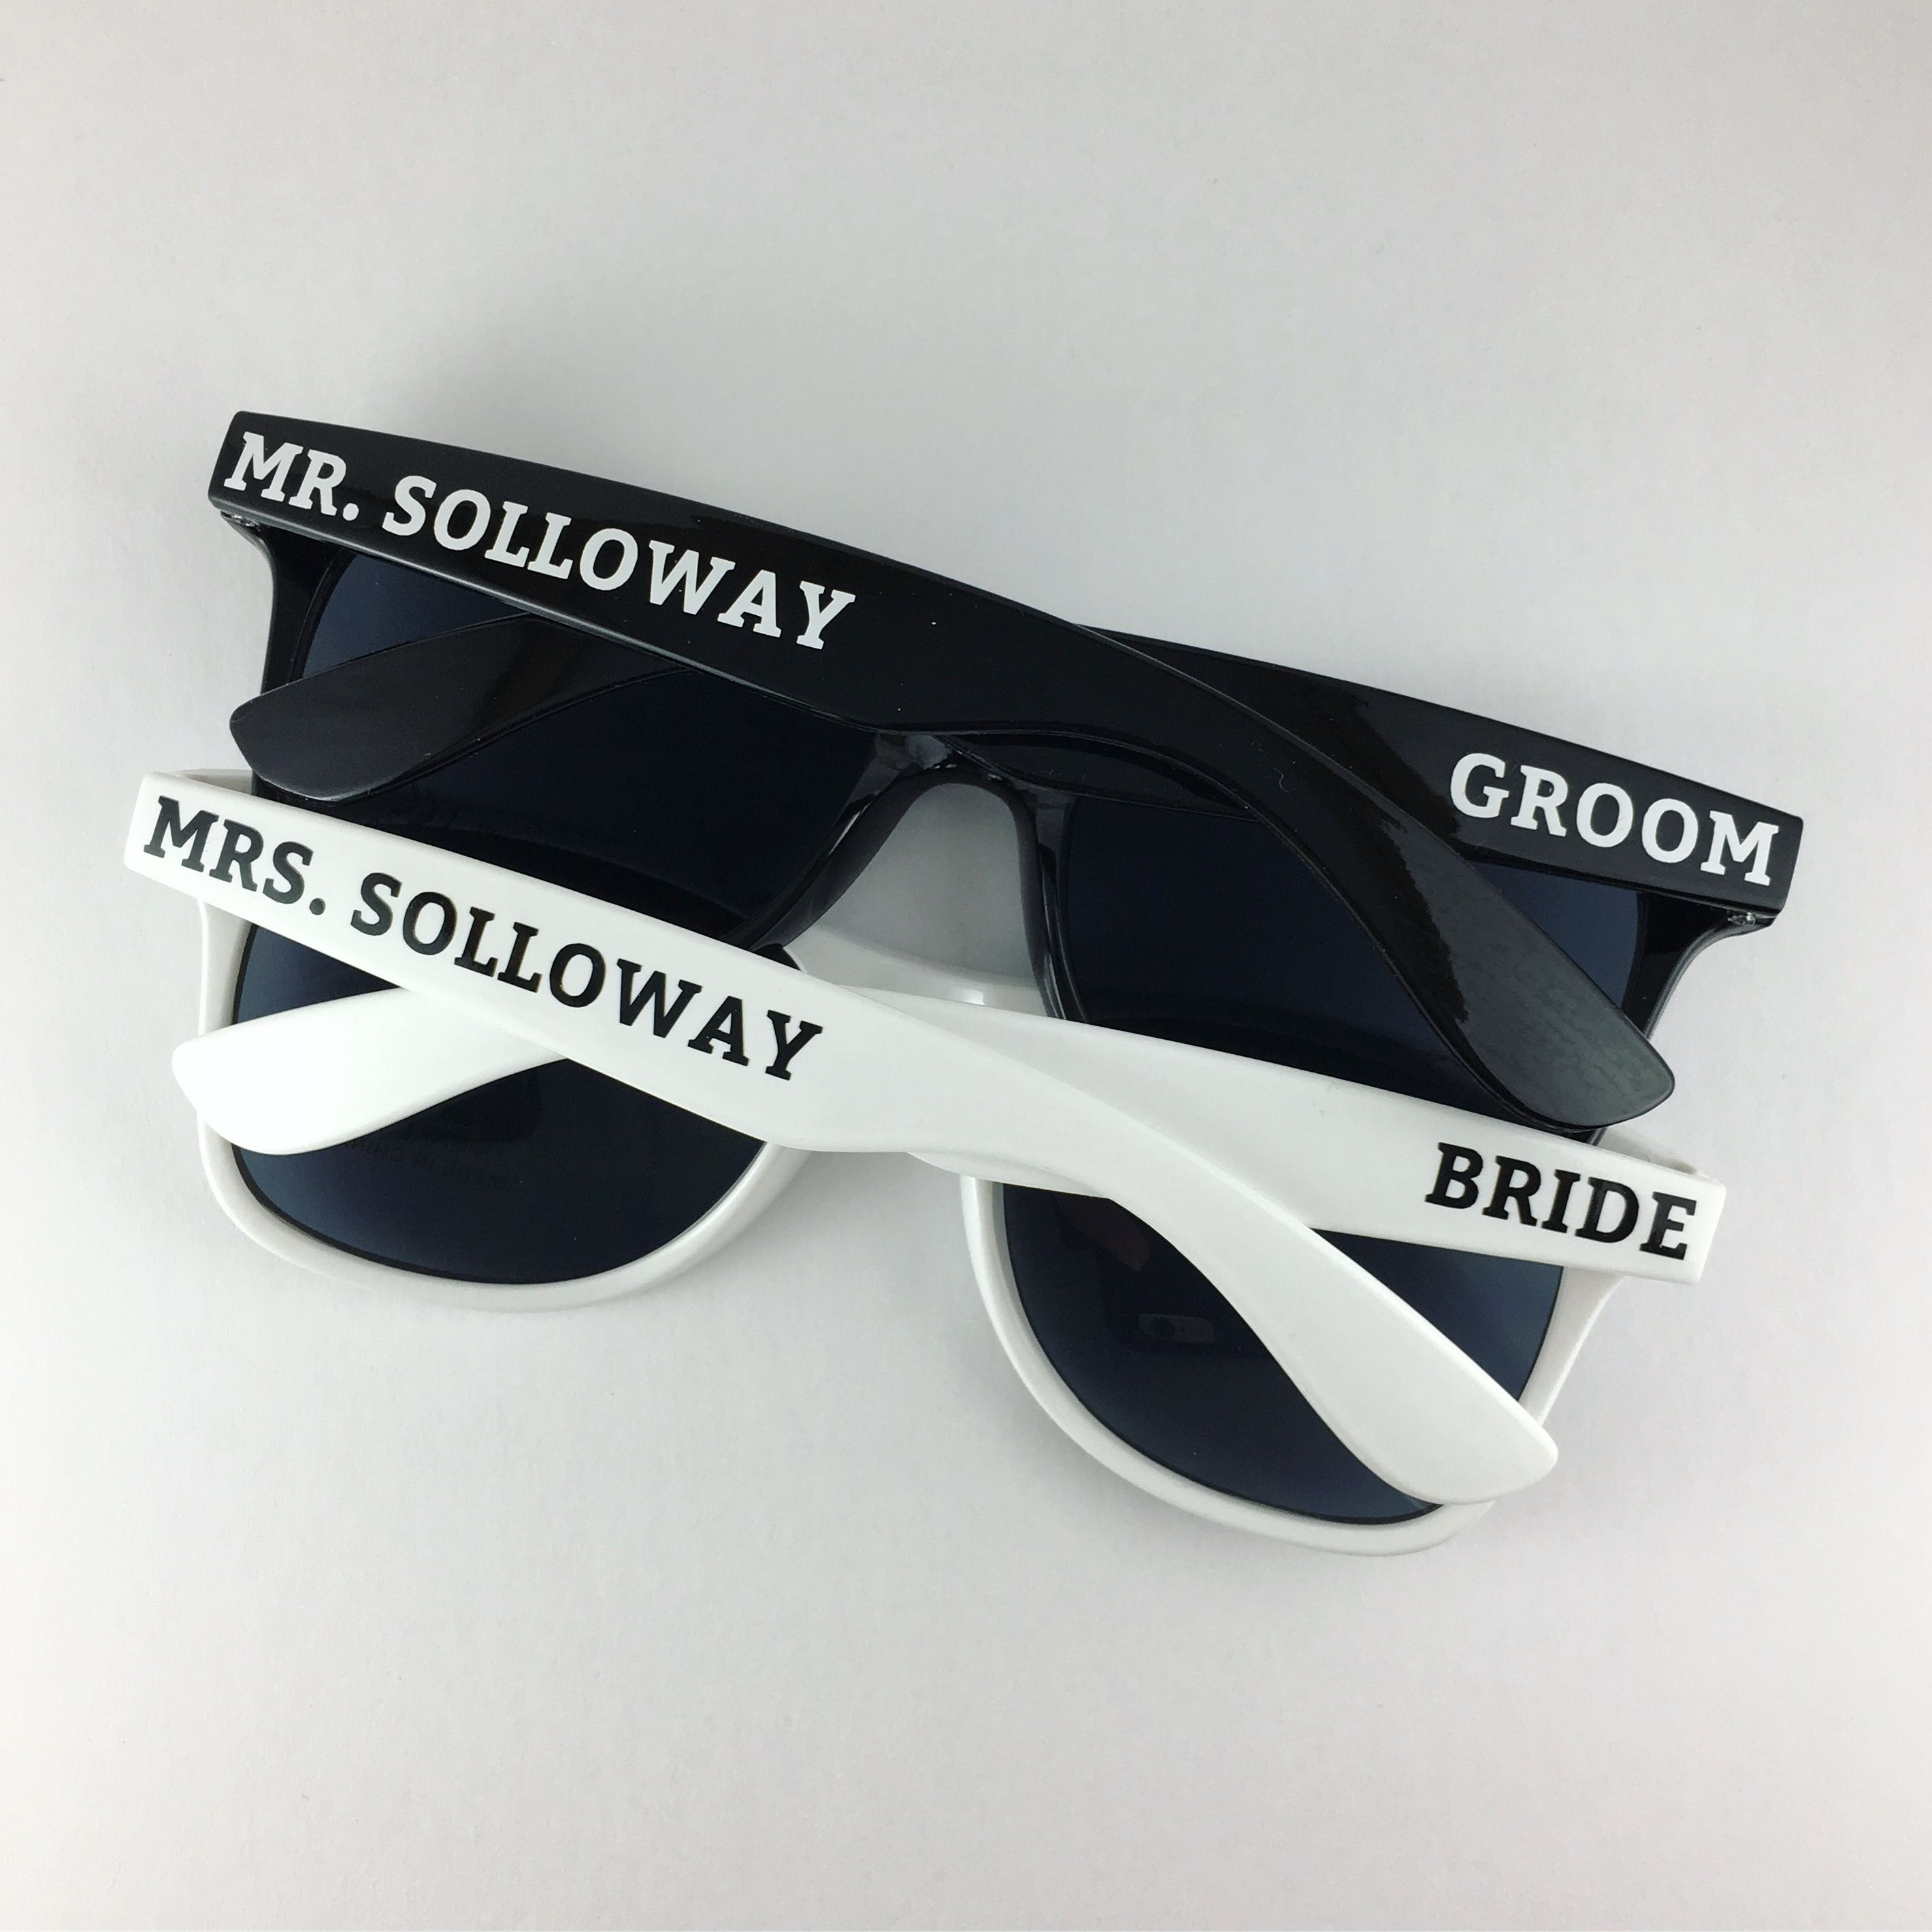 Bride and Groom Personalized Sunglasses, Set of 2, Wedding Favor ...